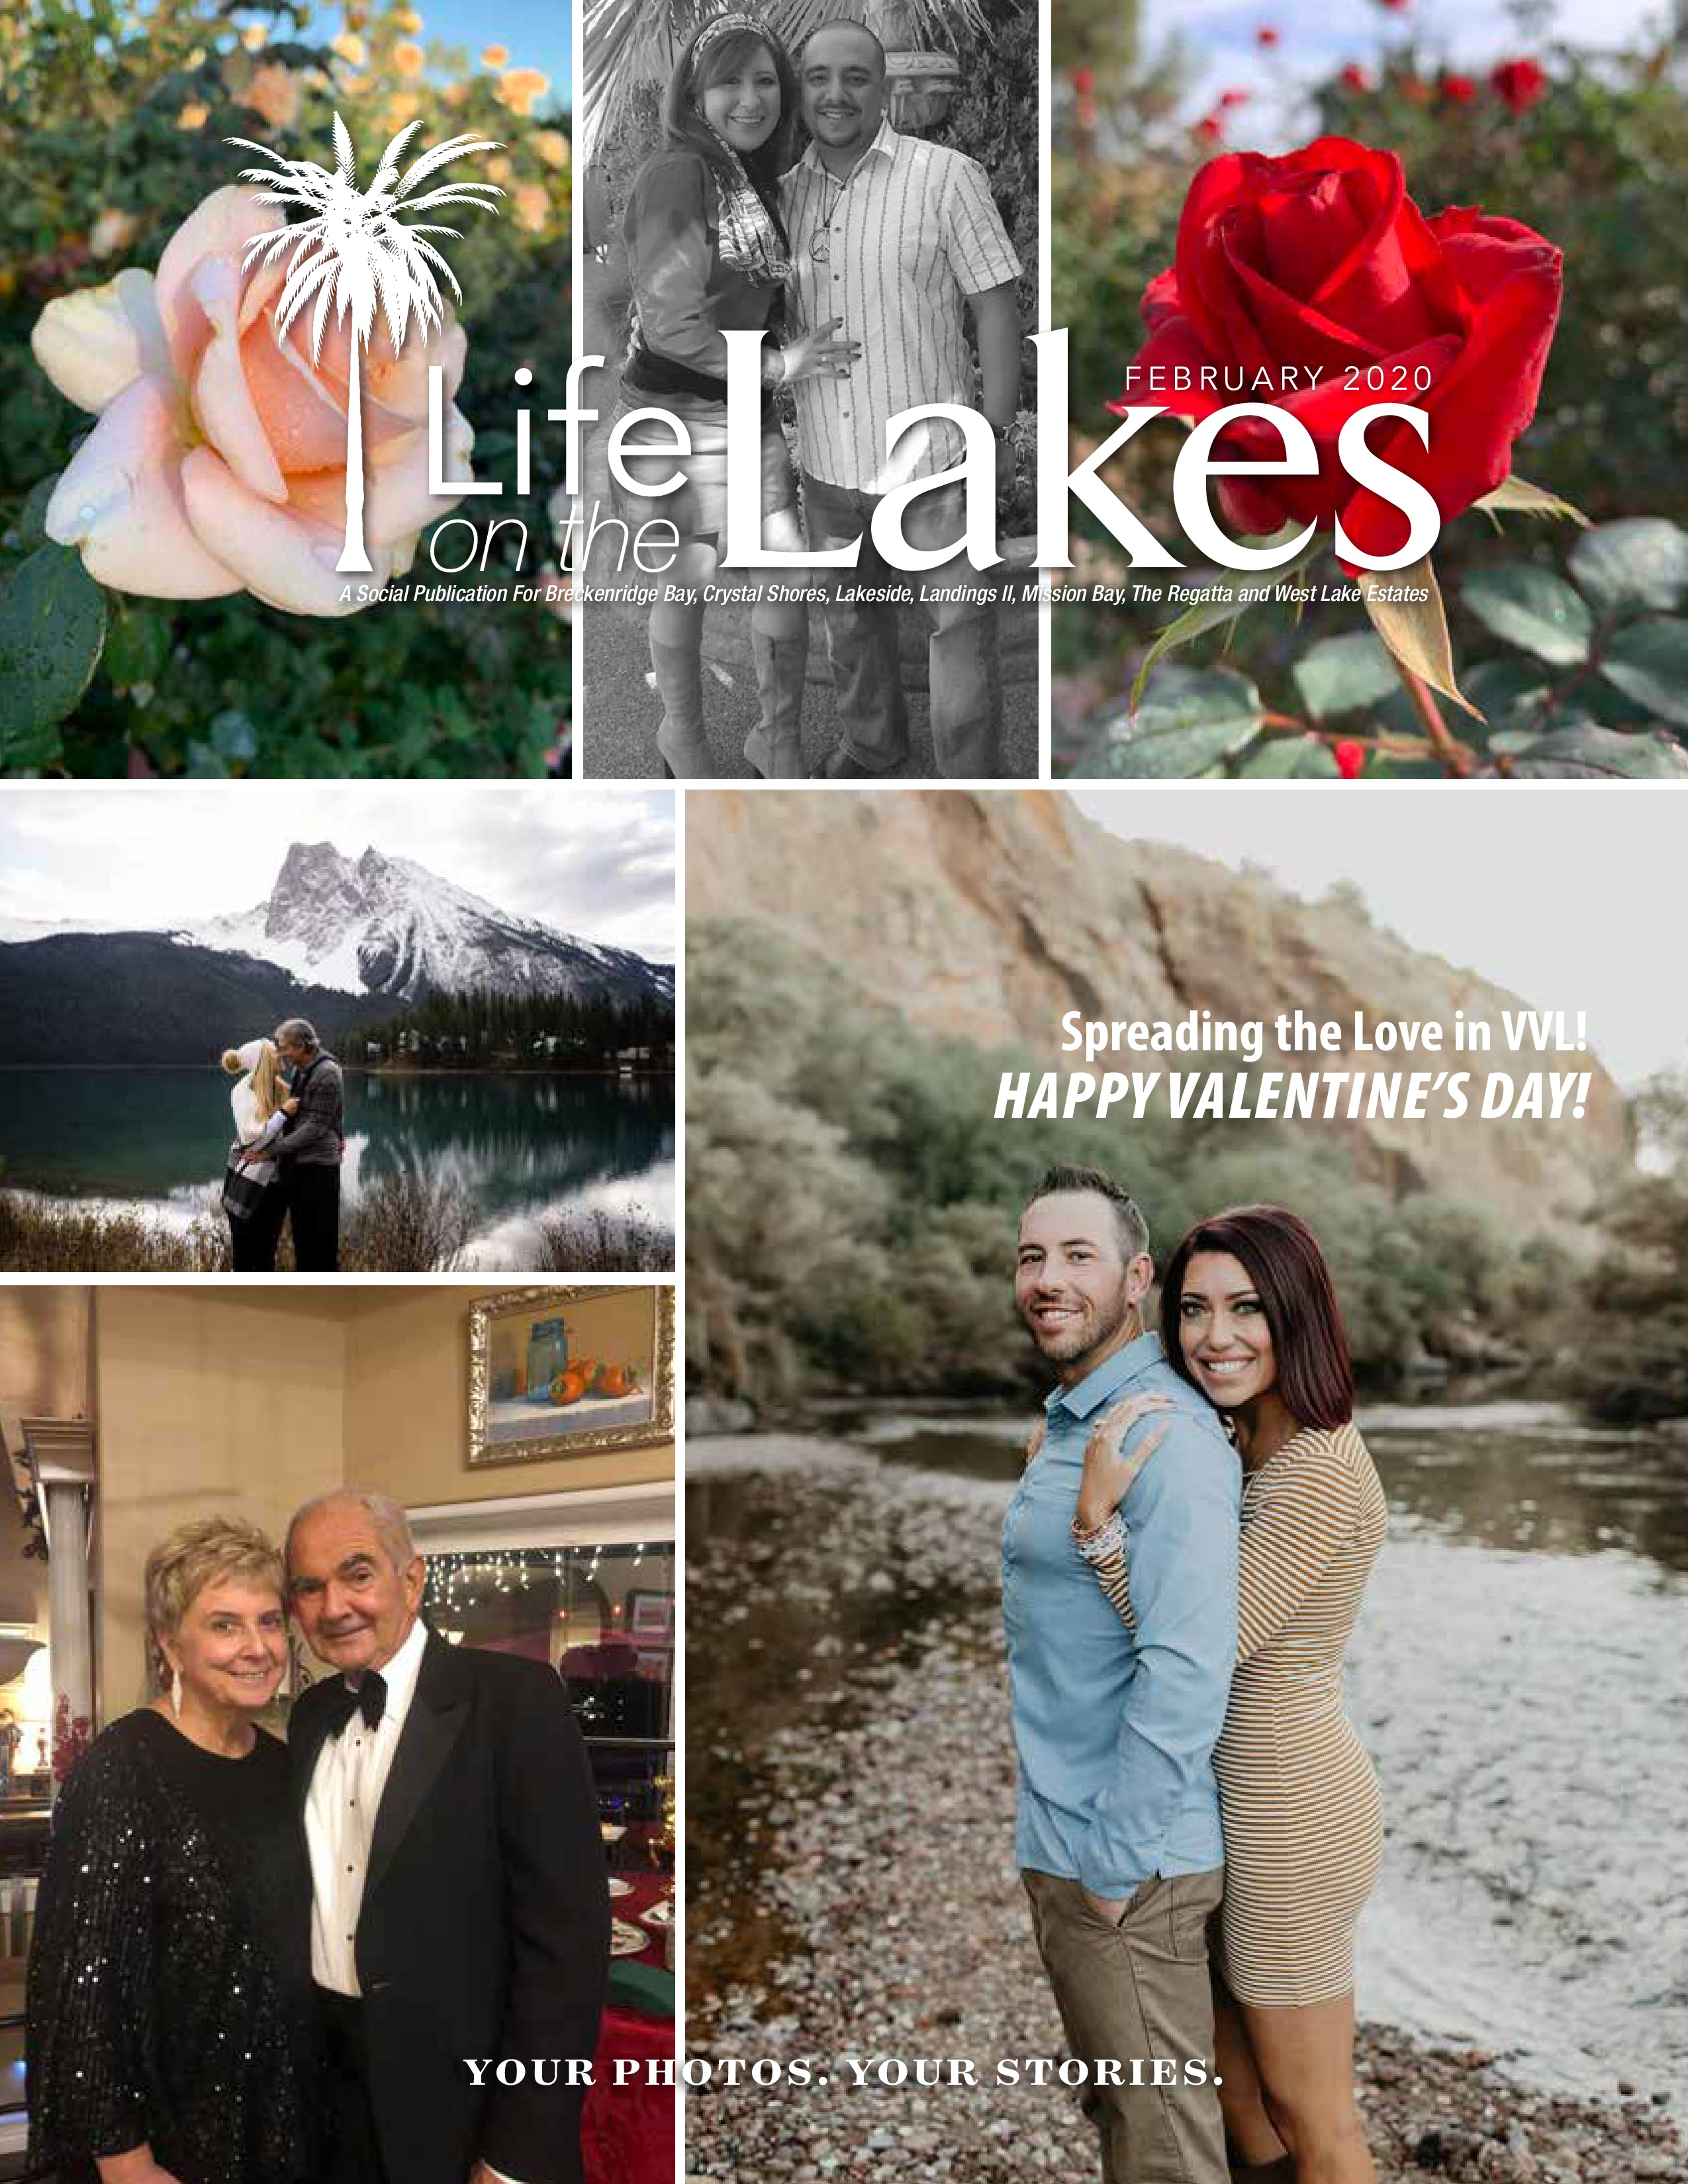 Feb 2020 life on the lakes page 1